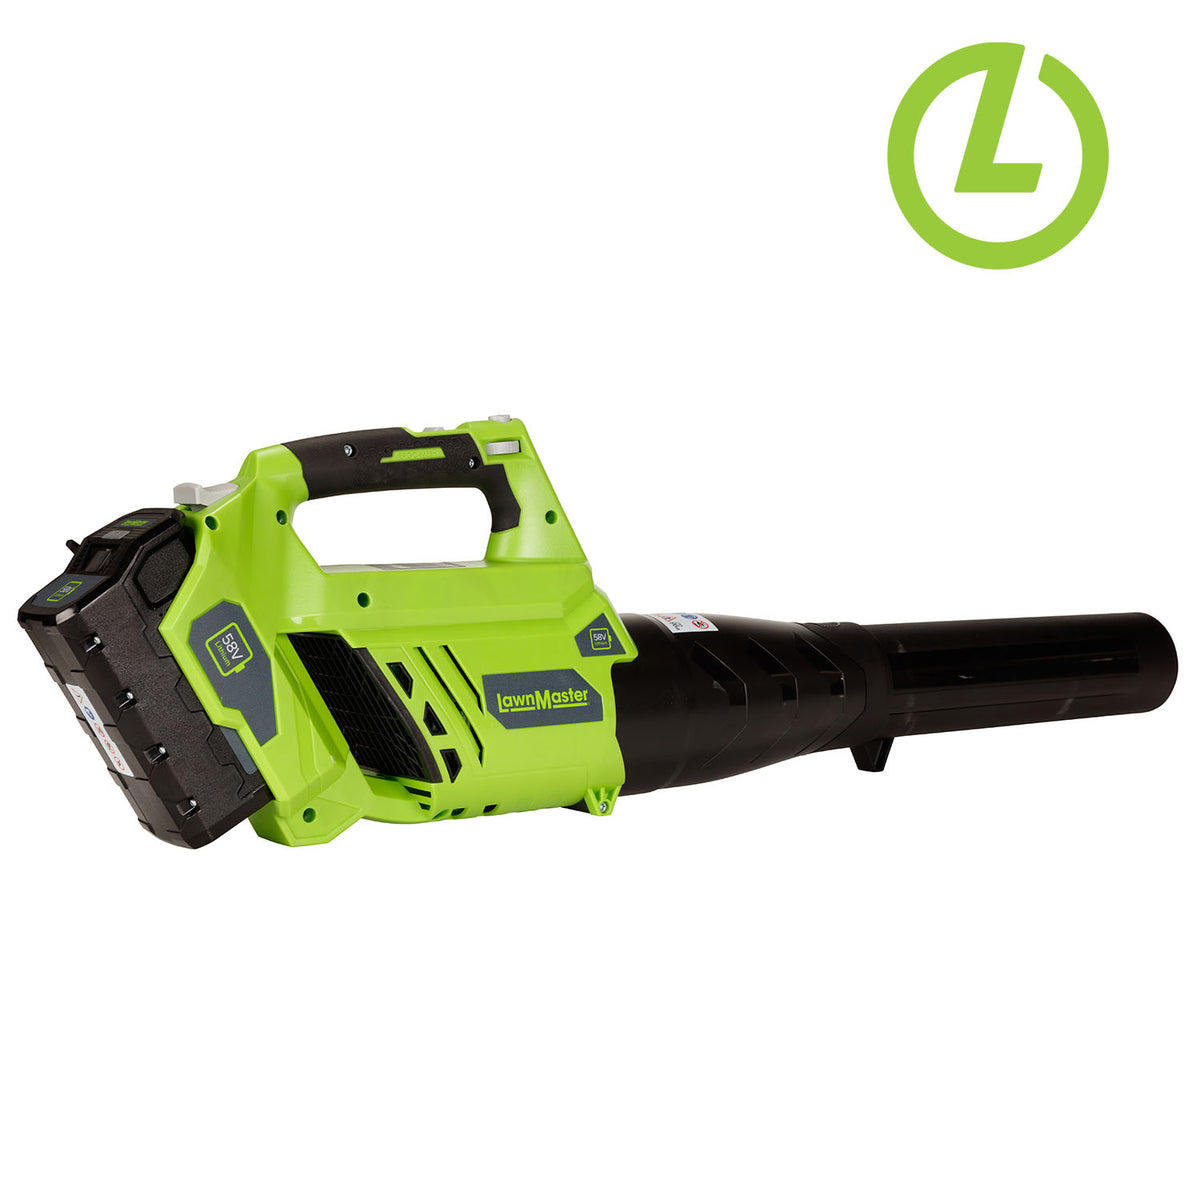 LawnMaster Blower